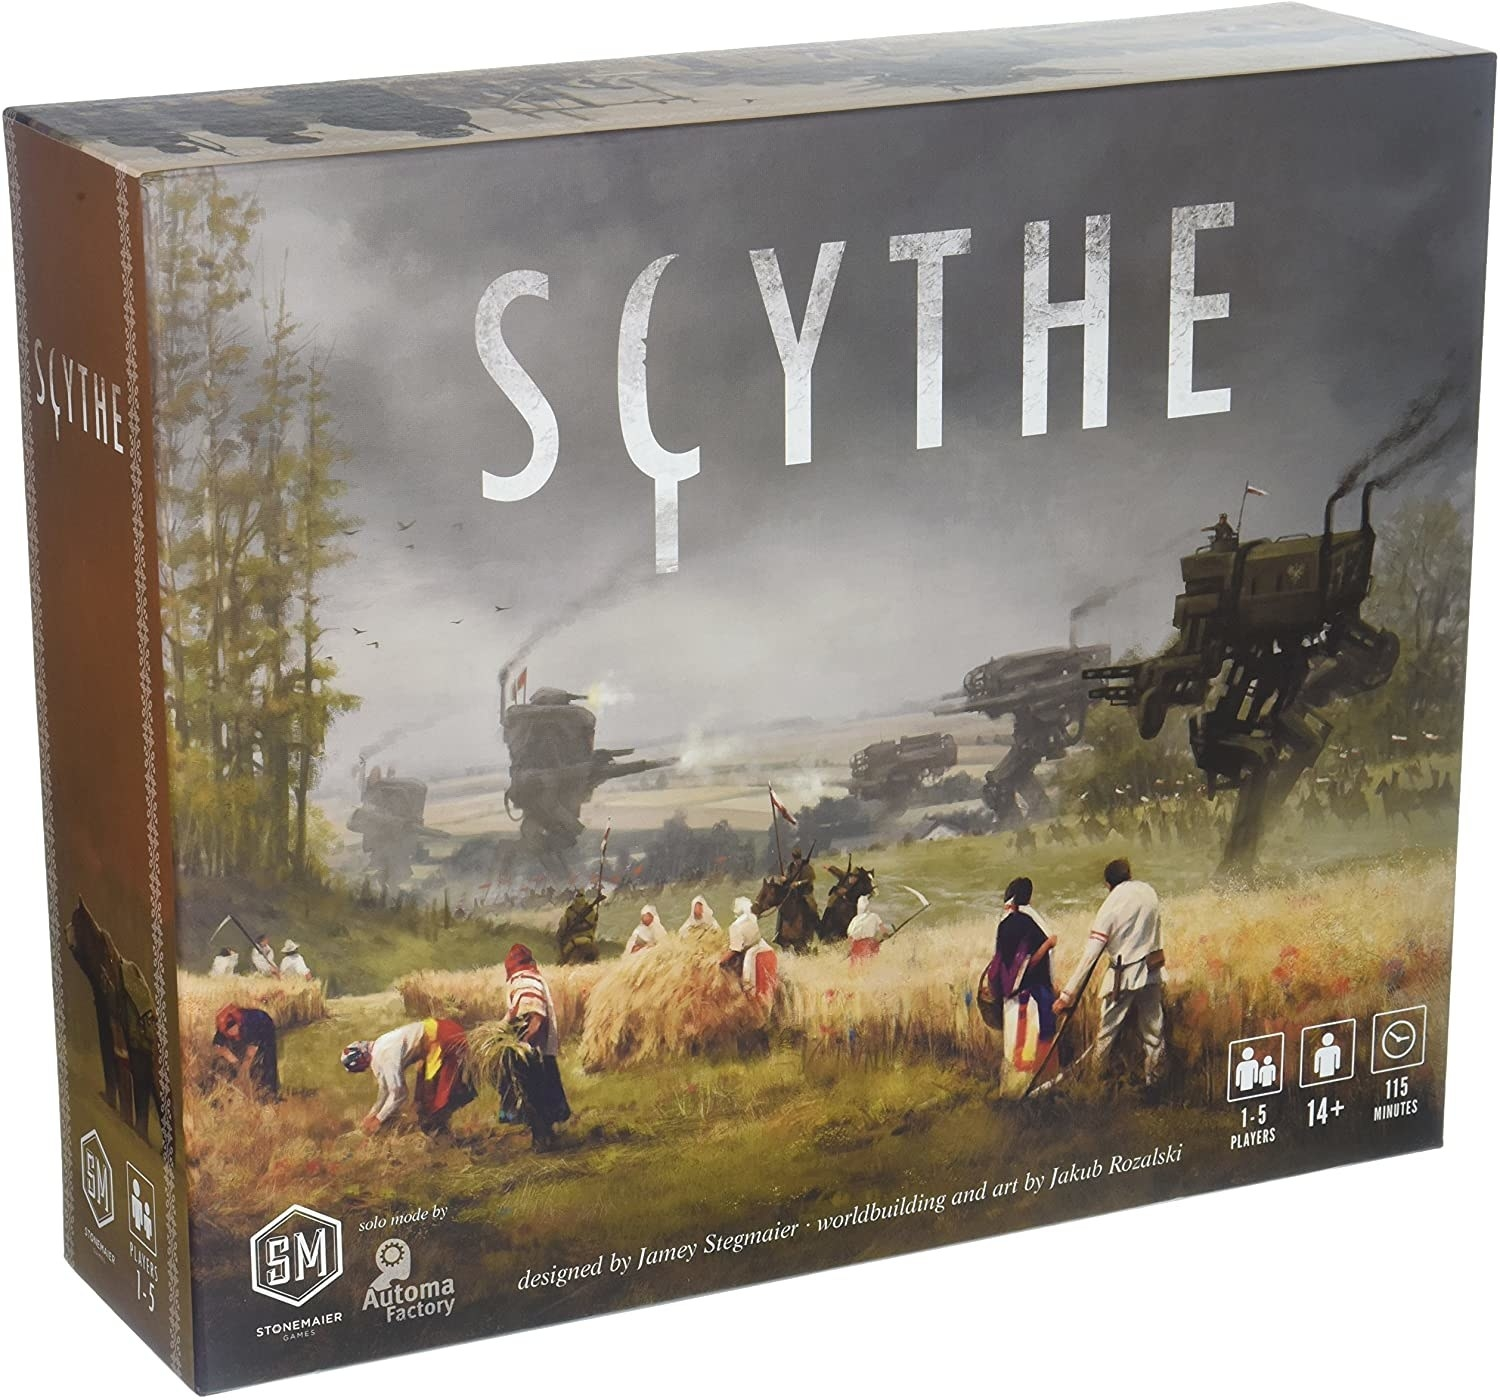 Scythe board game box with steampunk '20s-era war scene illustrated on front